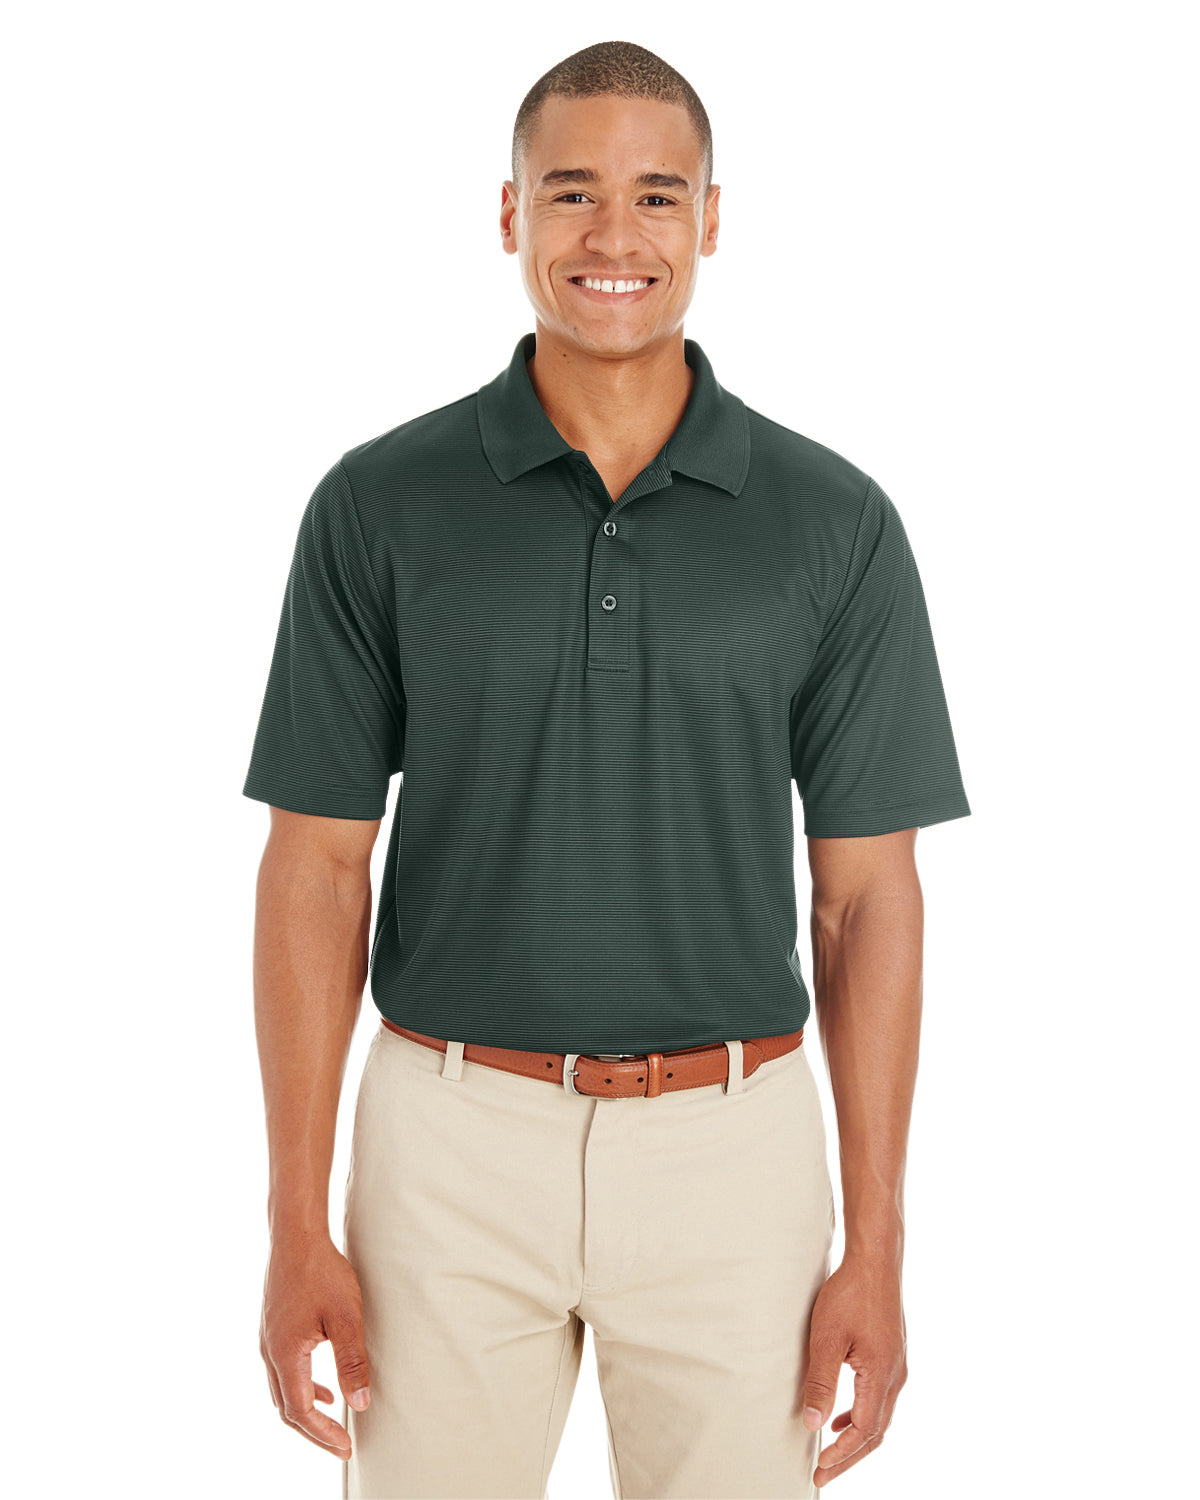 Rainwater's Mini Stripe Polo in Forrest-Grey - Rainwater's Men's Clothing and Tuxedo Rental